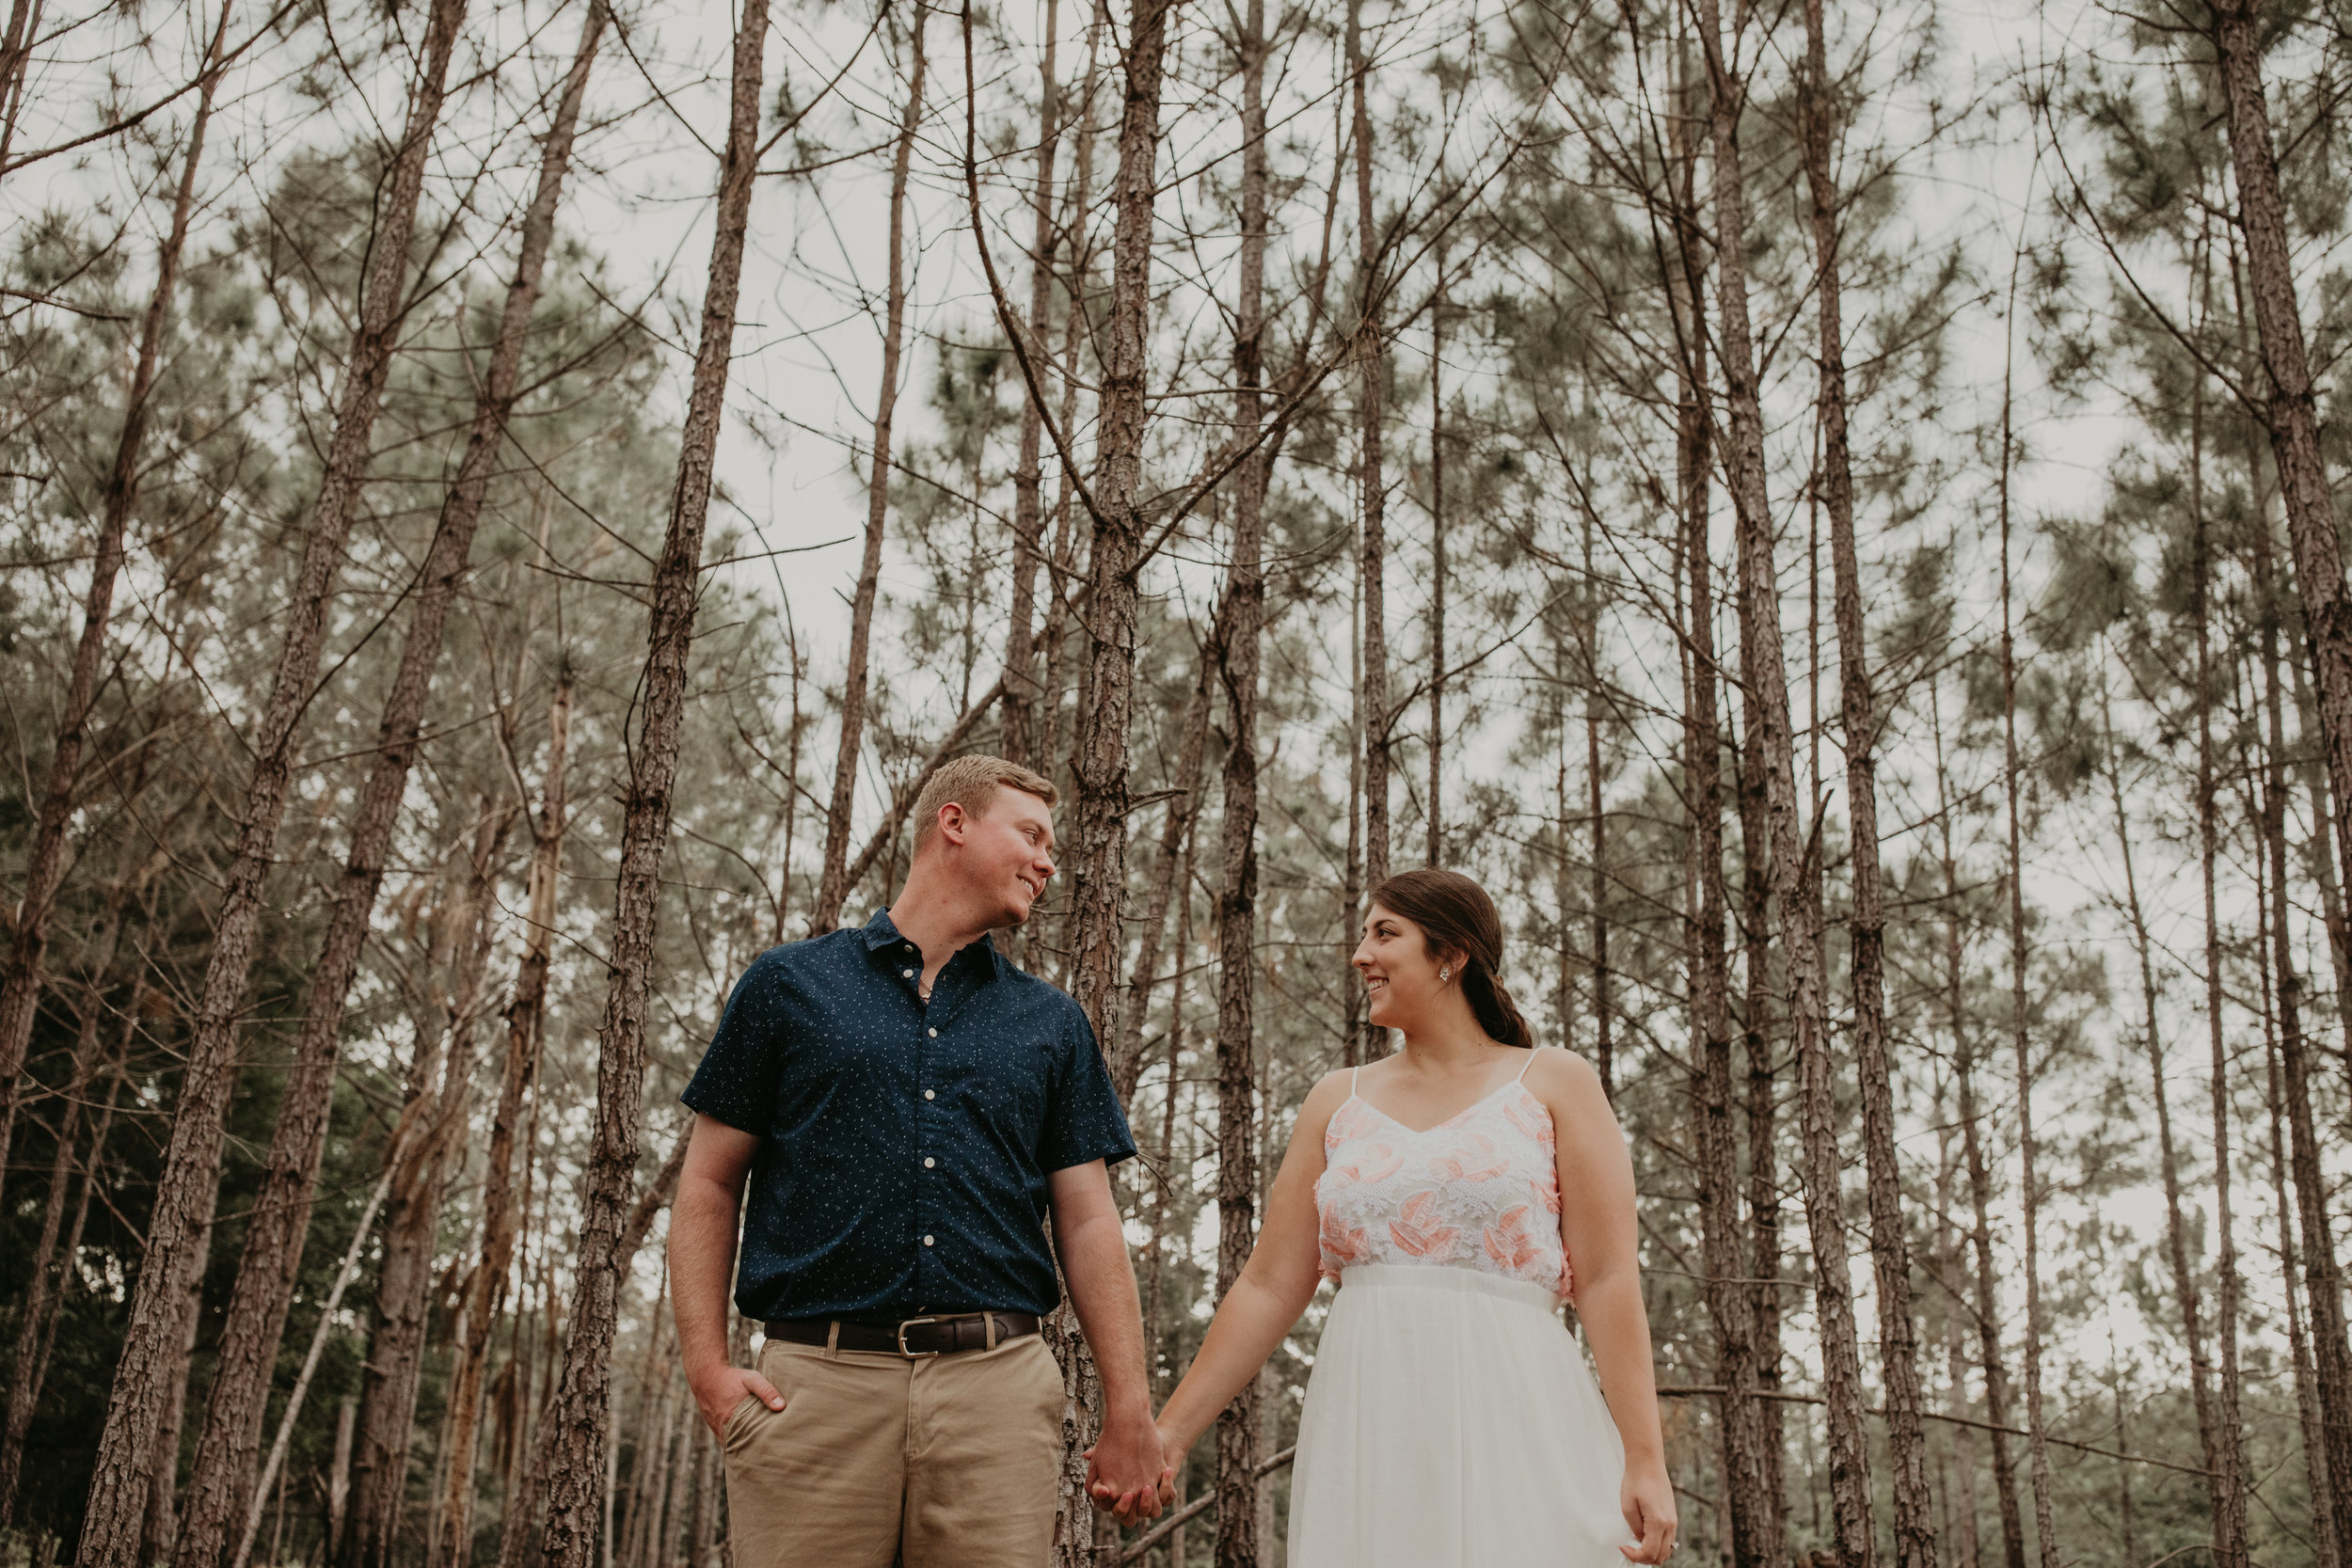 Lake Louisa State Park Clermont Florida-Engagement Session-Kelsey and CJ77.JPG